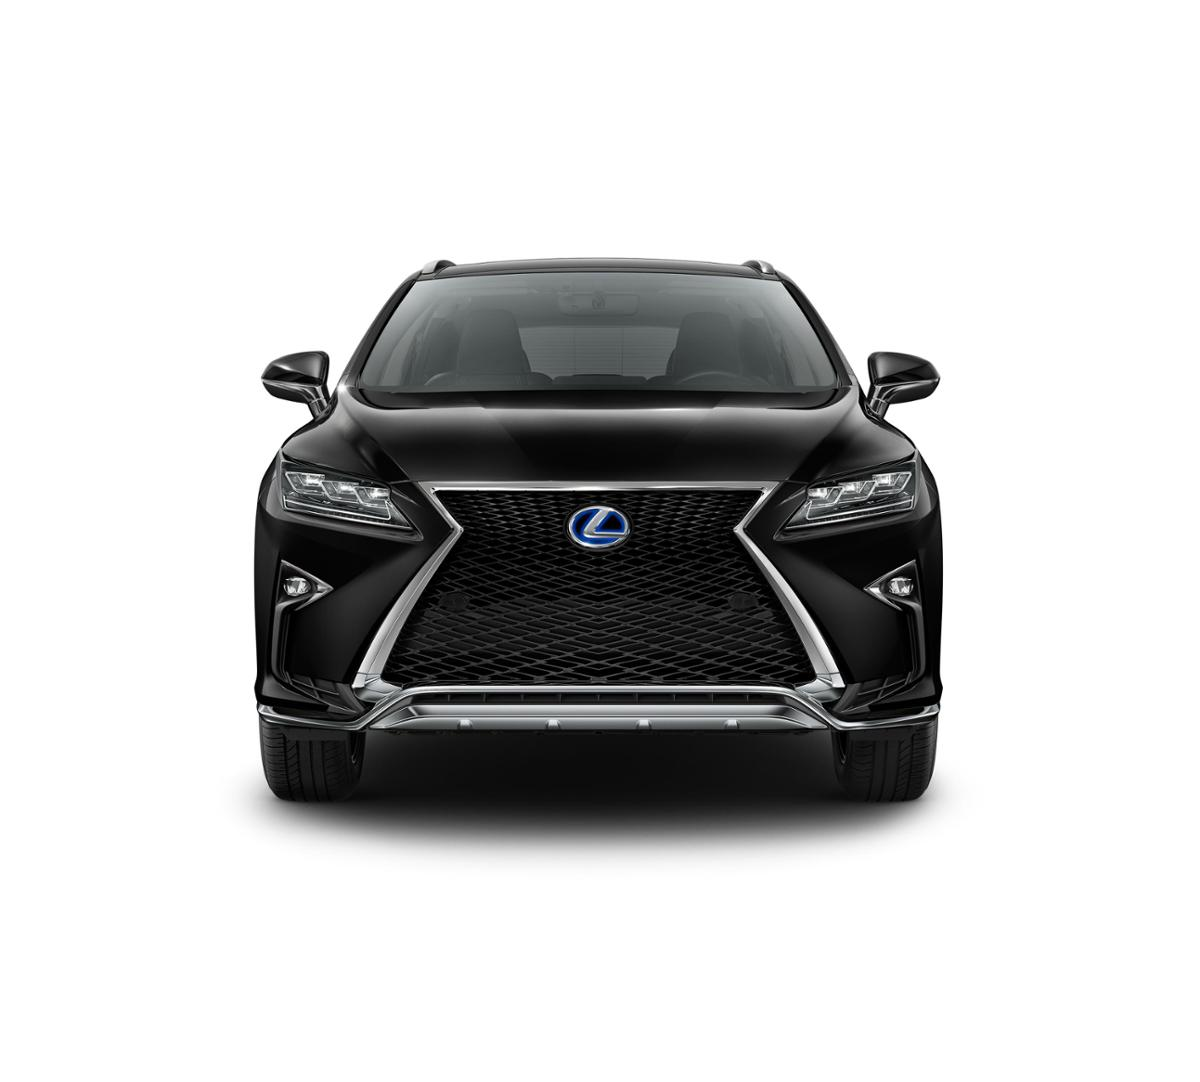 new 2019 obsidian lexus rx 450h for sale in white plains ny w19118. Black Bedroom Furniture Sets. Home Design Ideas